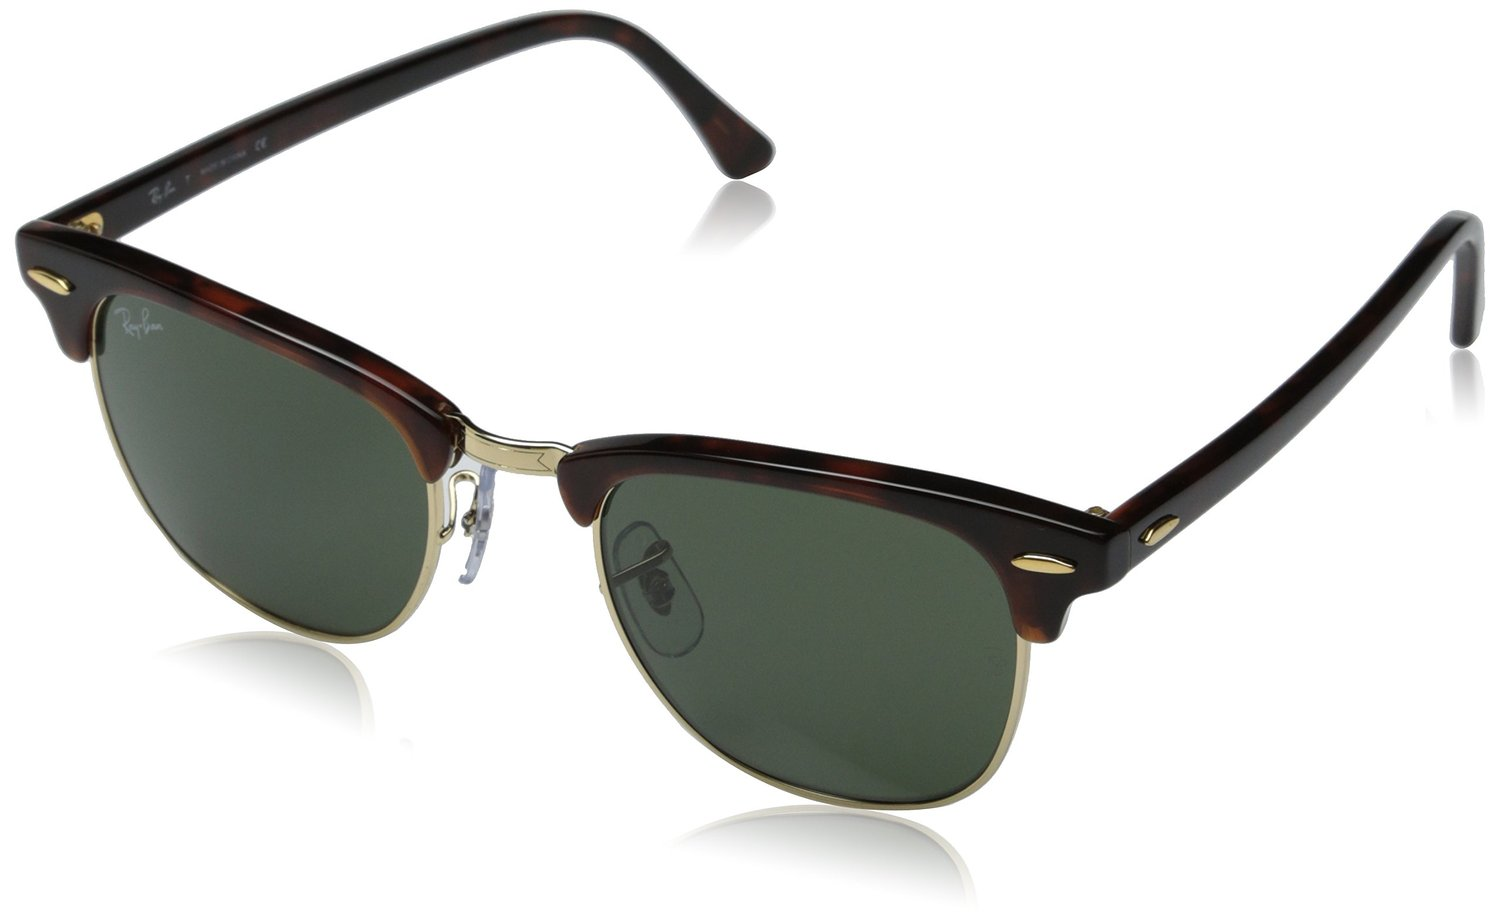 Amazon.com: Ray-Ban RB3016 Classic Clubmaster Sunglasses